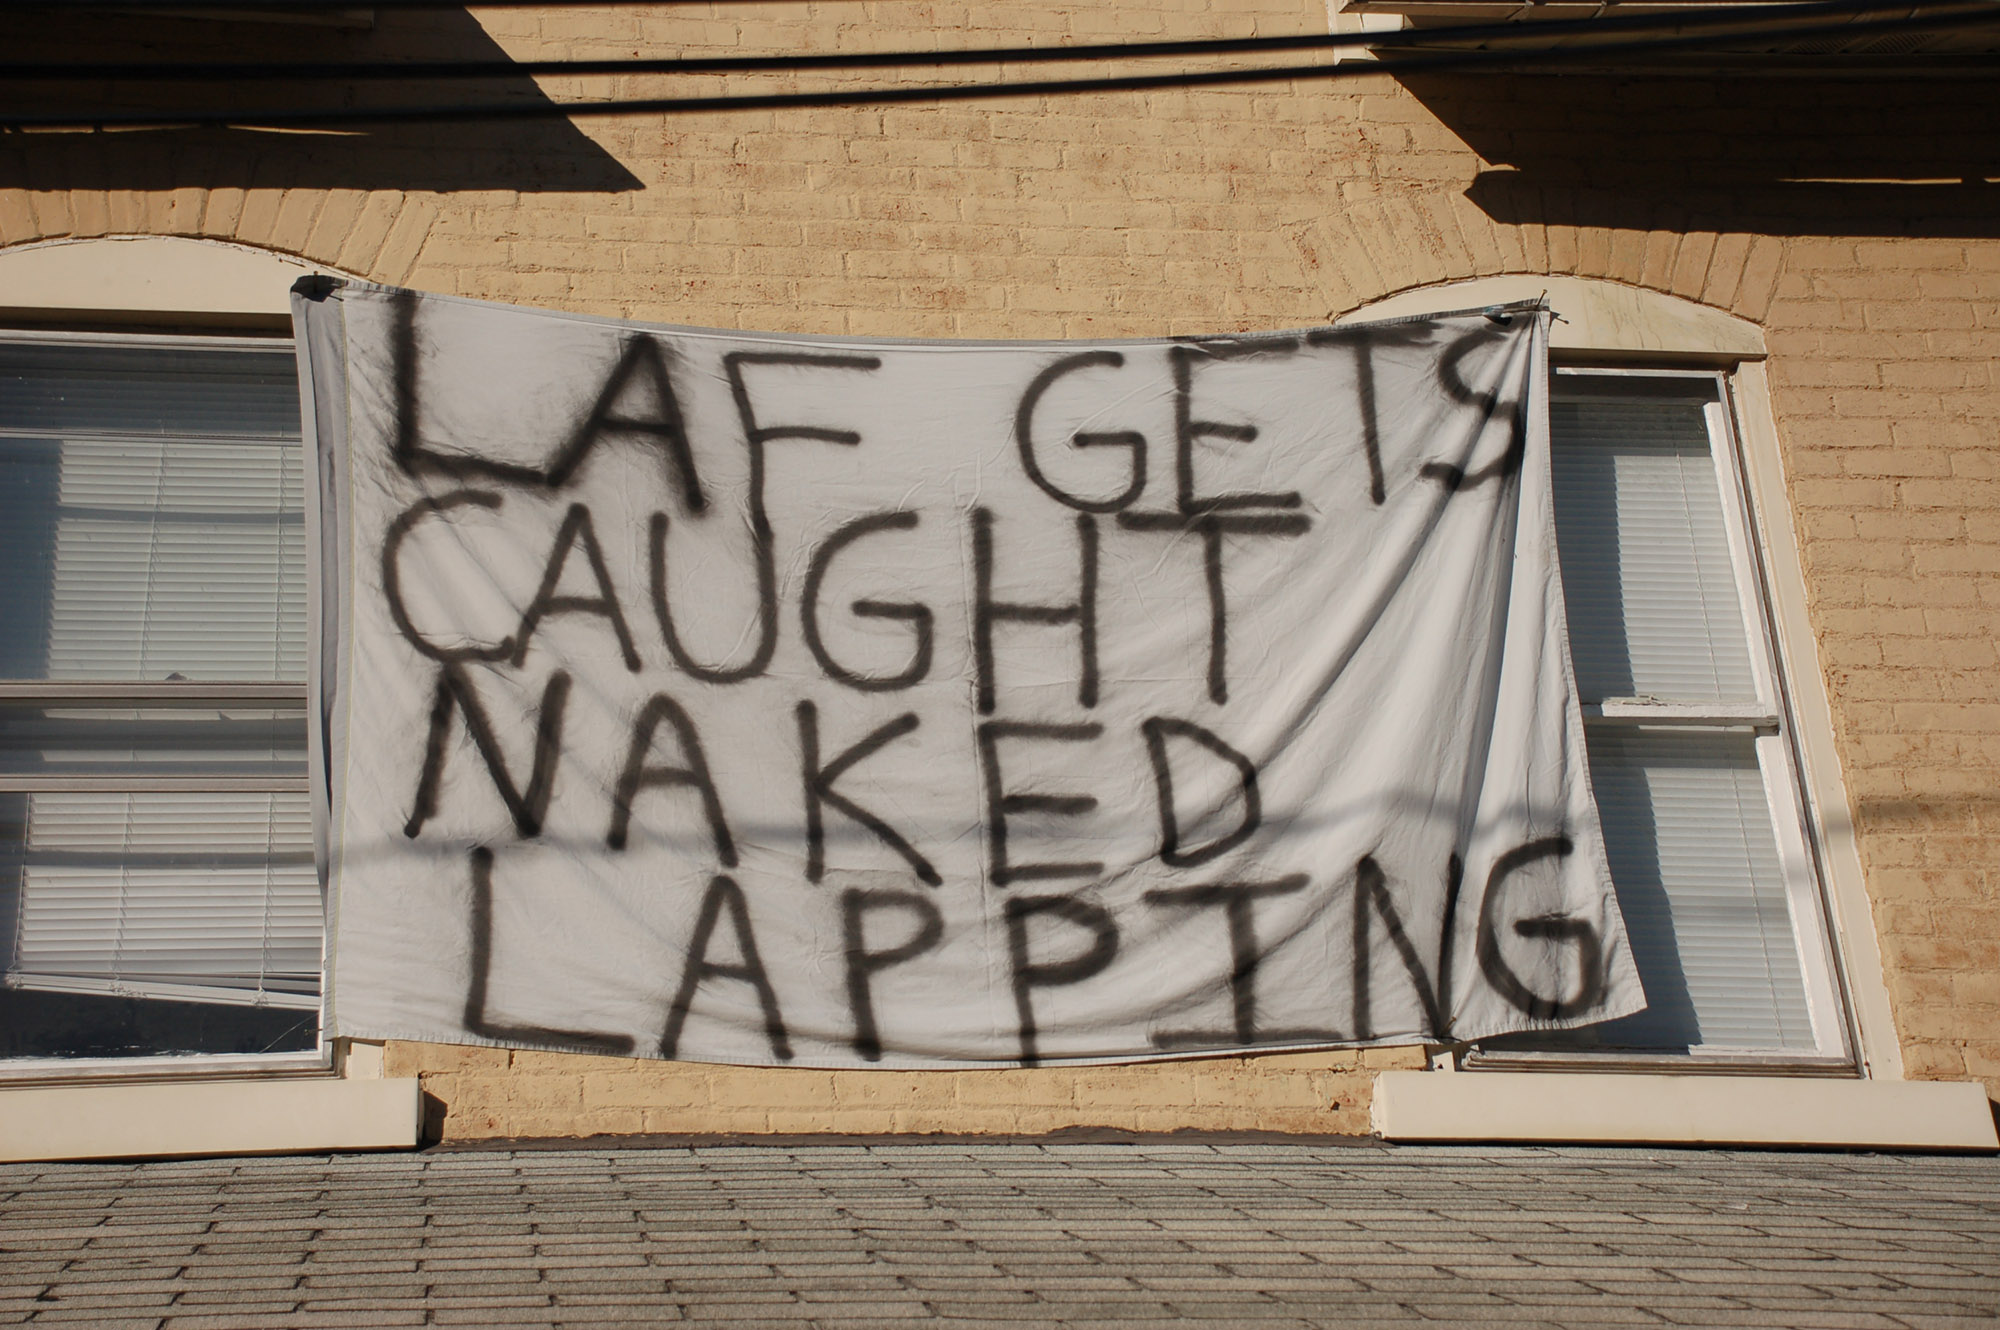 "A sign reading ""Laf gets caught naked lapping"" hangs on a house at East Fifth Street on Nov. 18, 2016. These signs are hung on the fronts of many houses on East Fifth. (Gaby Morera/B&W Staff)"